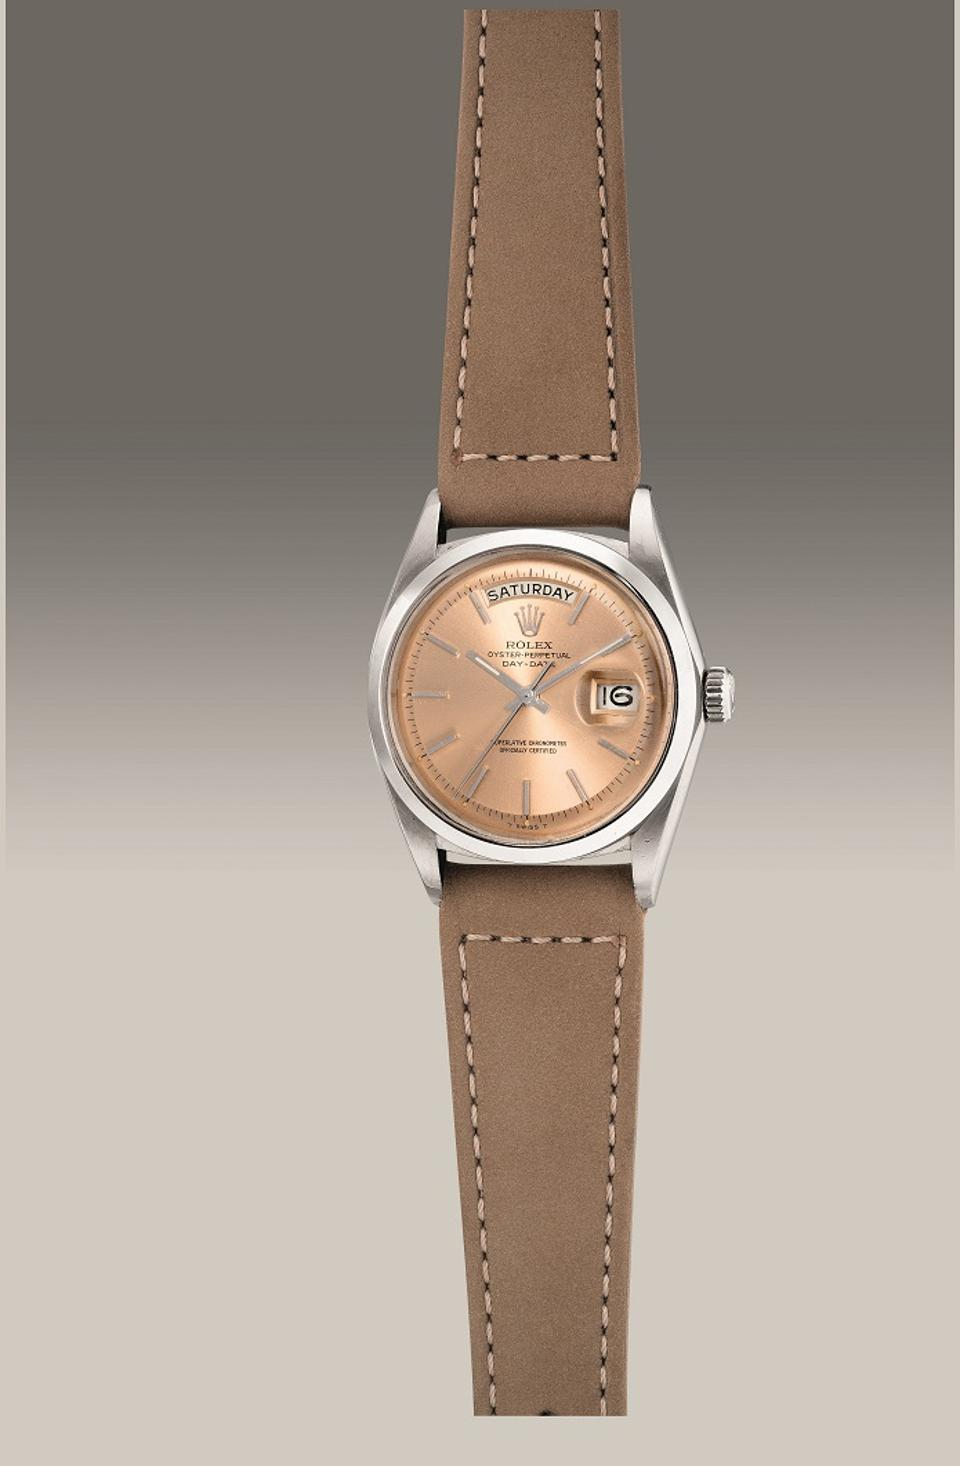 Rolex Day-Date Reference 1802, 1971, white gold watch with salmon dial